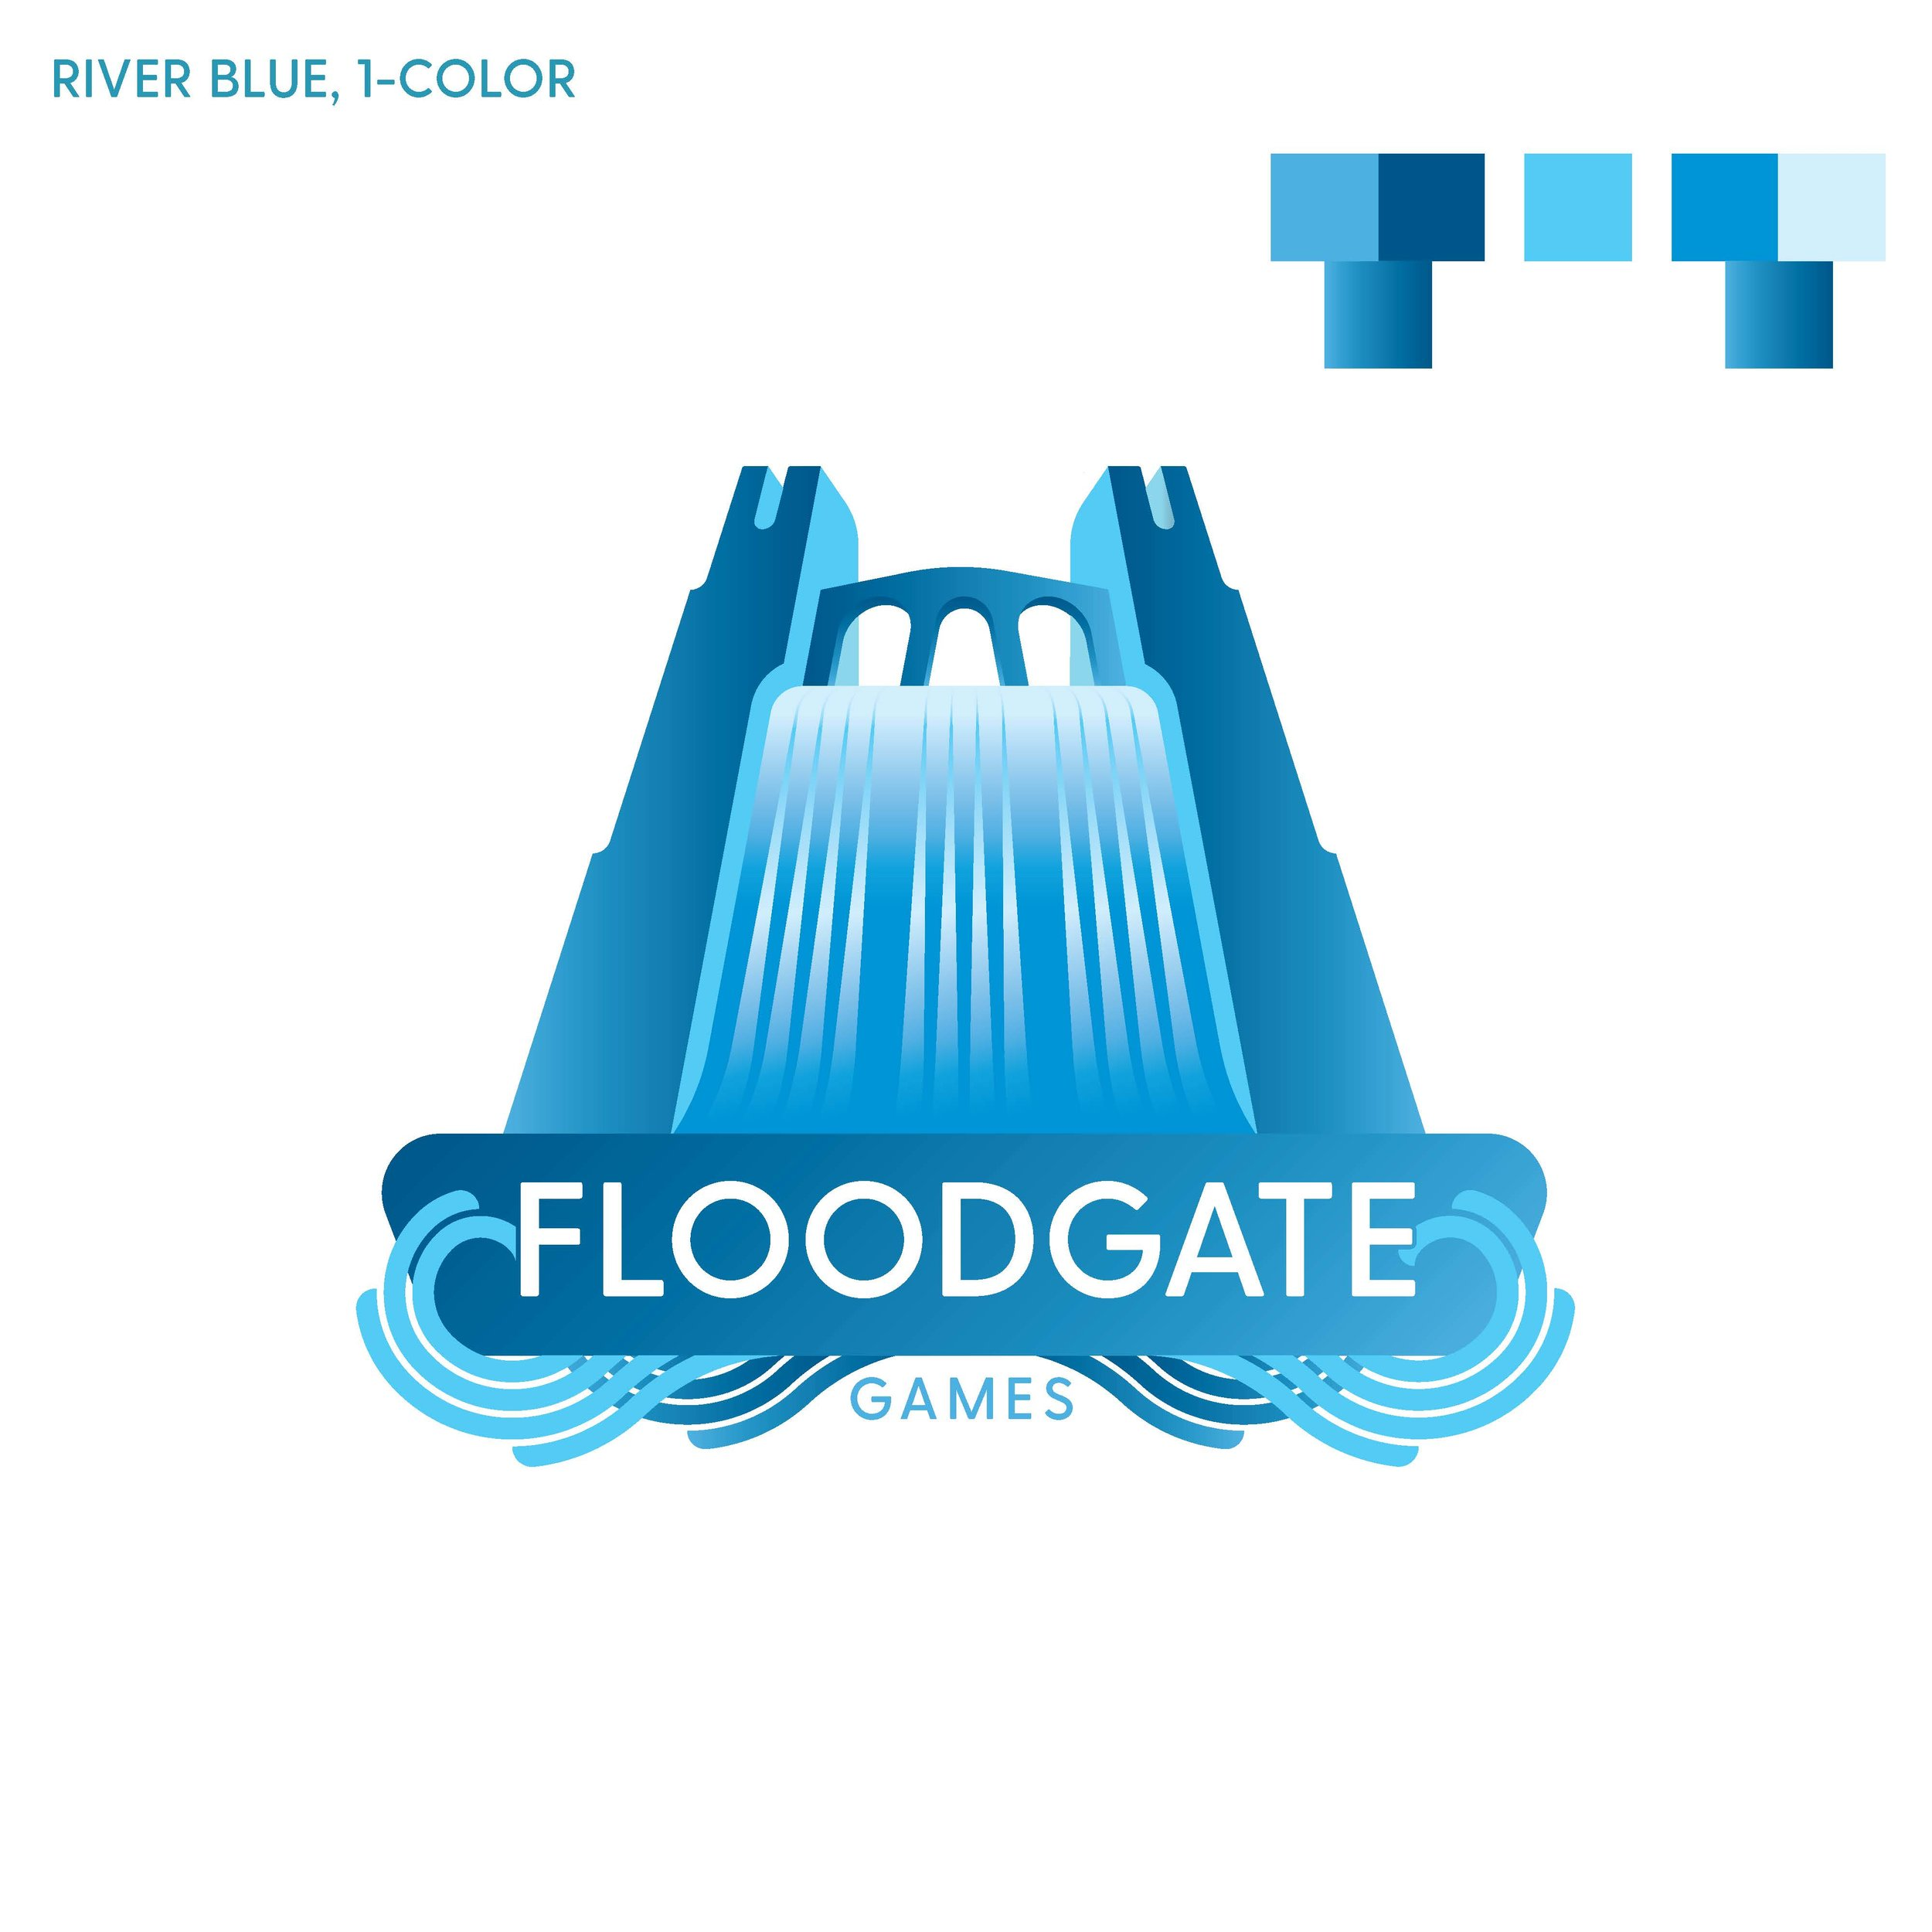 Floodgate_Logo2_V6_COLORS_Page_04.jpg